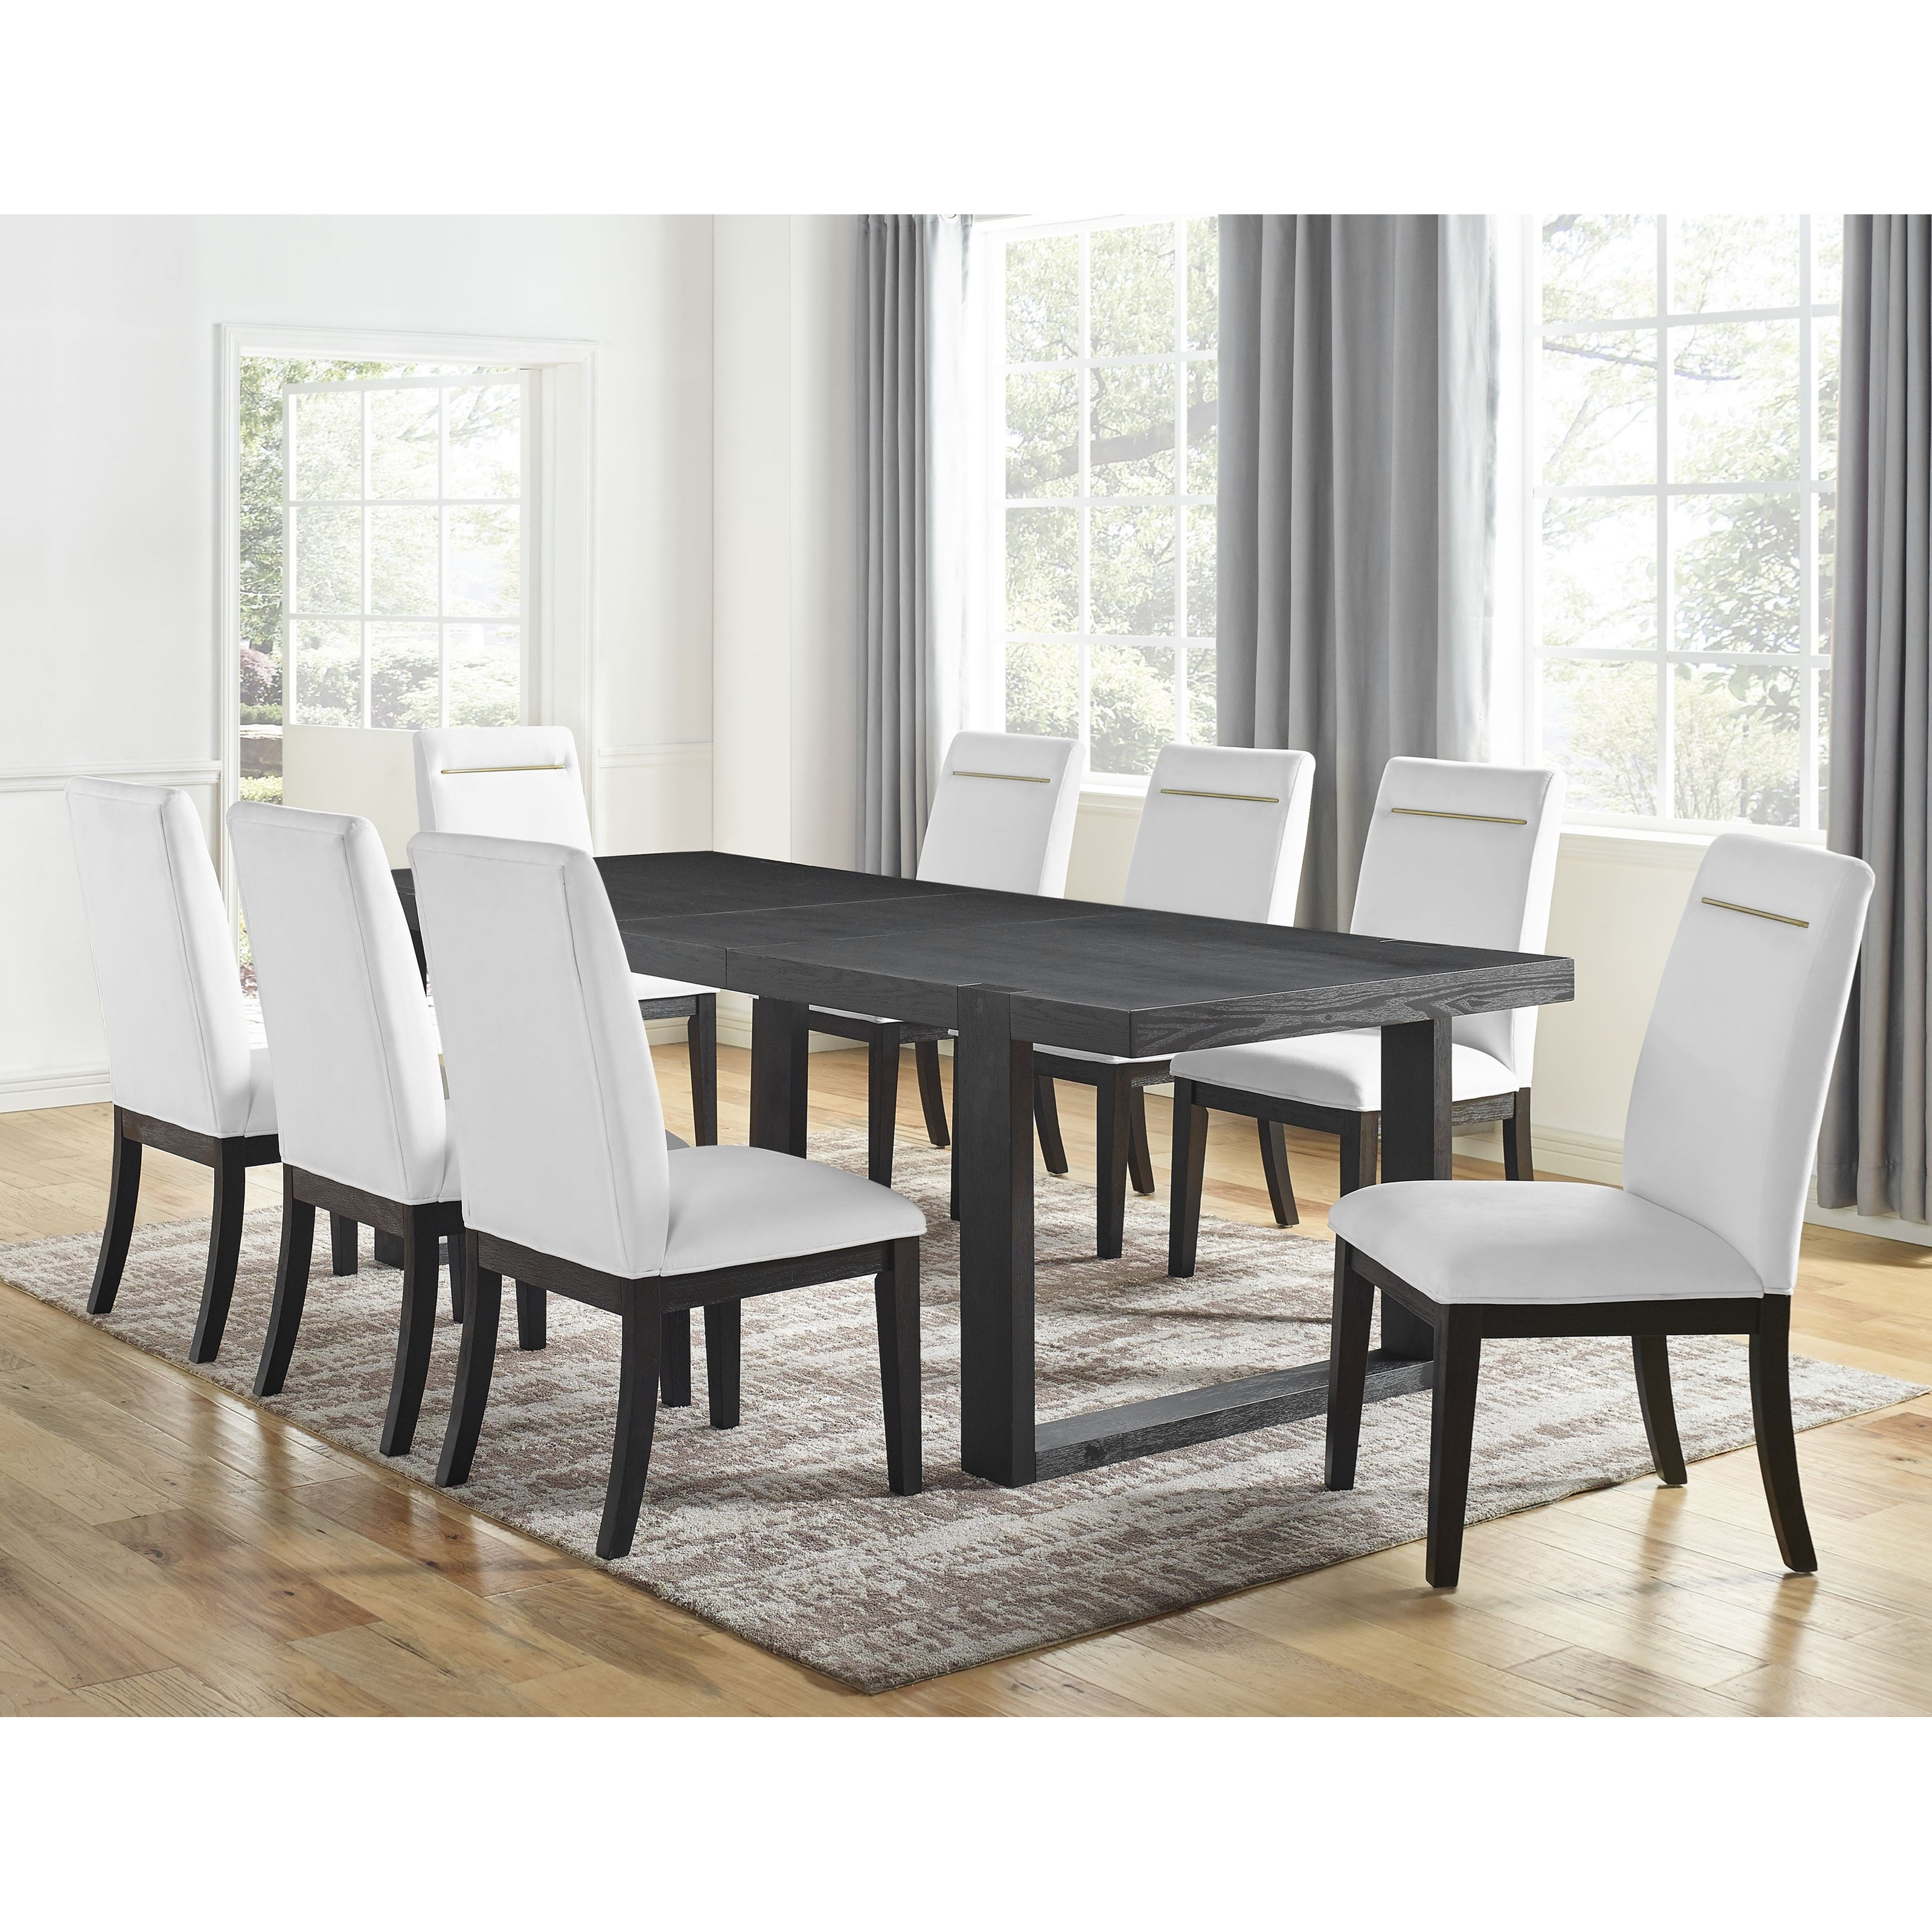 Yves 9-Piece Table and Chair Set by Star at EFO Furniture Outlet